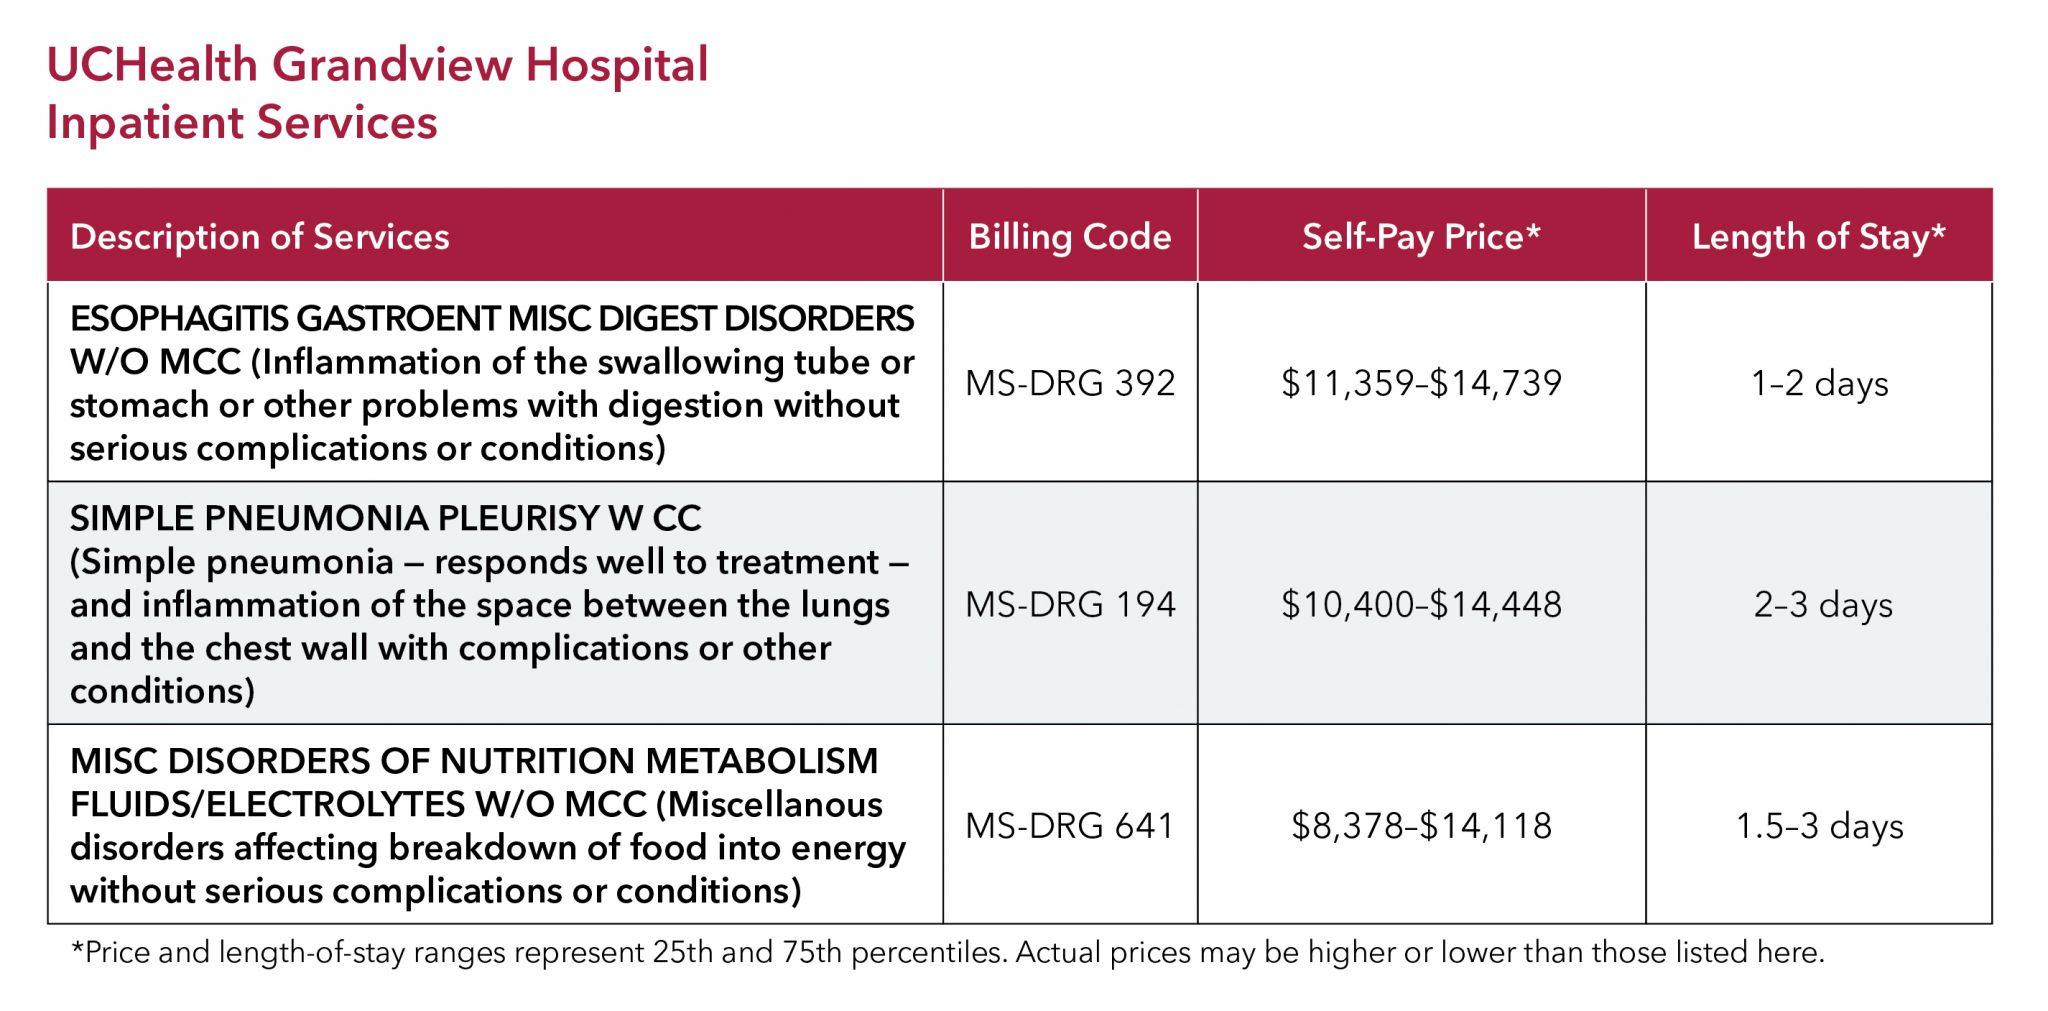 UCHealth Grandview Hospital inpatient pricing